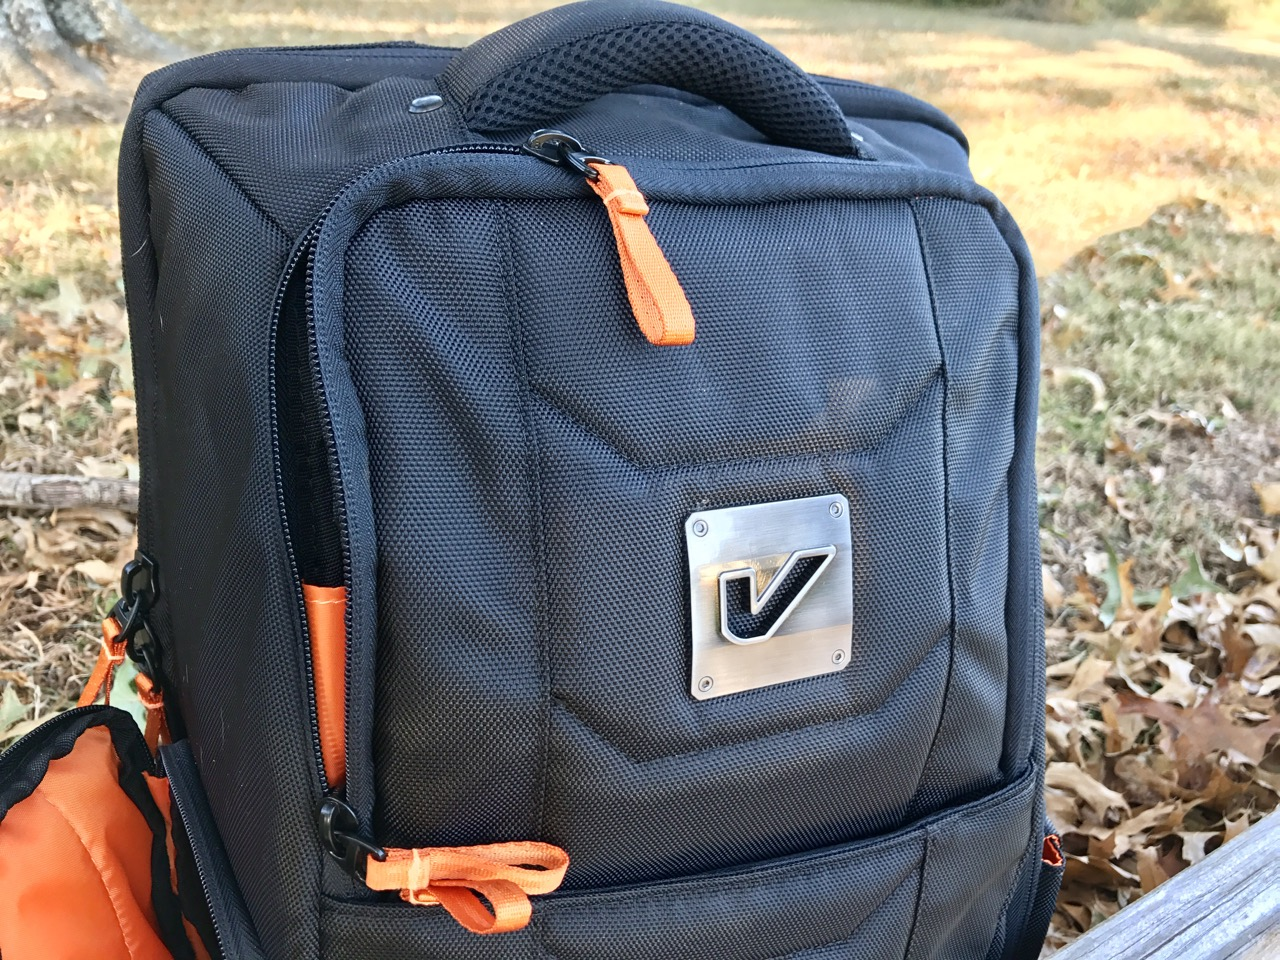 Backpack Review: The GRUV GEAR Club Bag 5